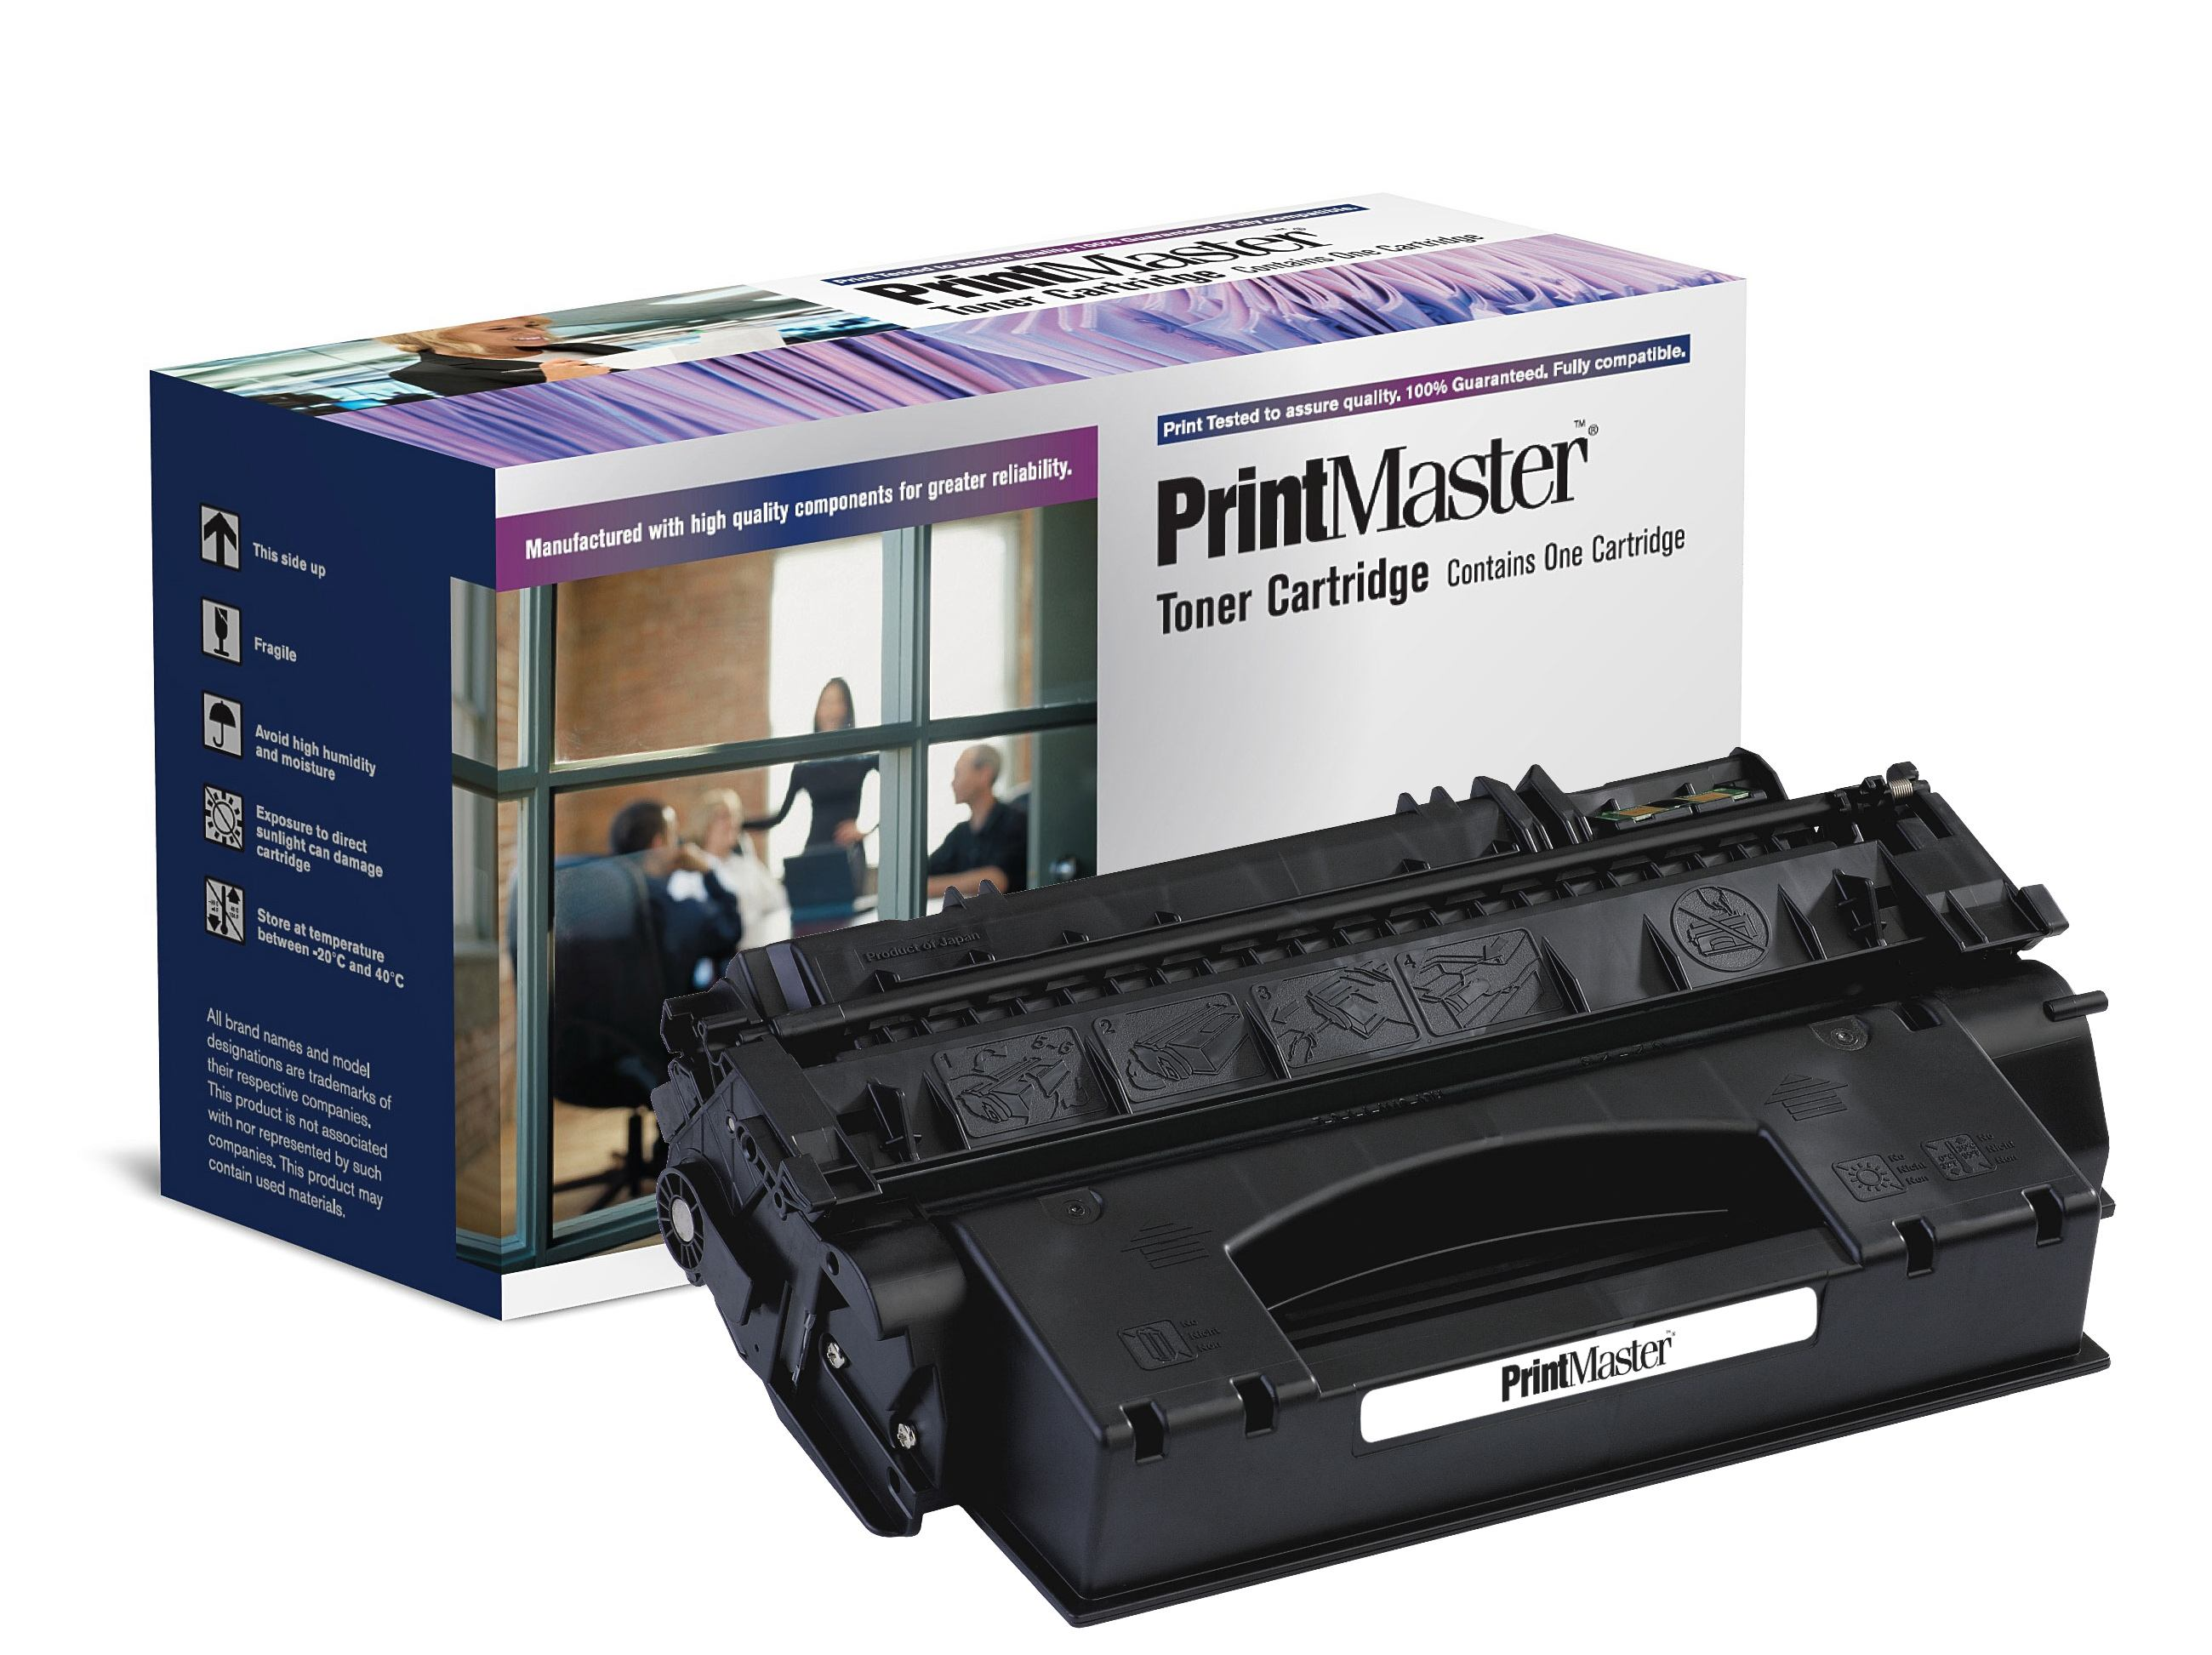 PrintMaster HP P2055 Toner Cartridge CE505X